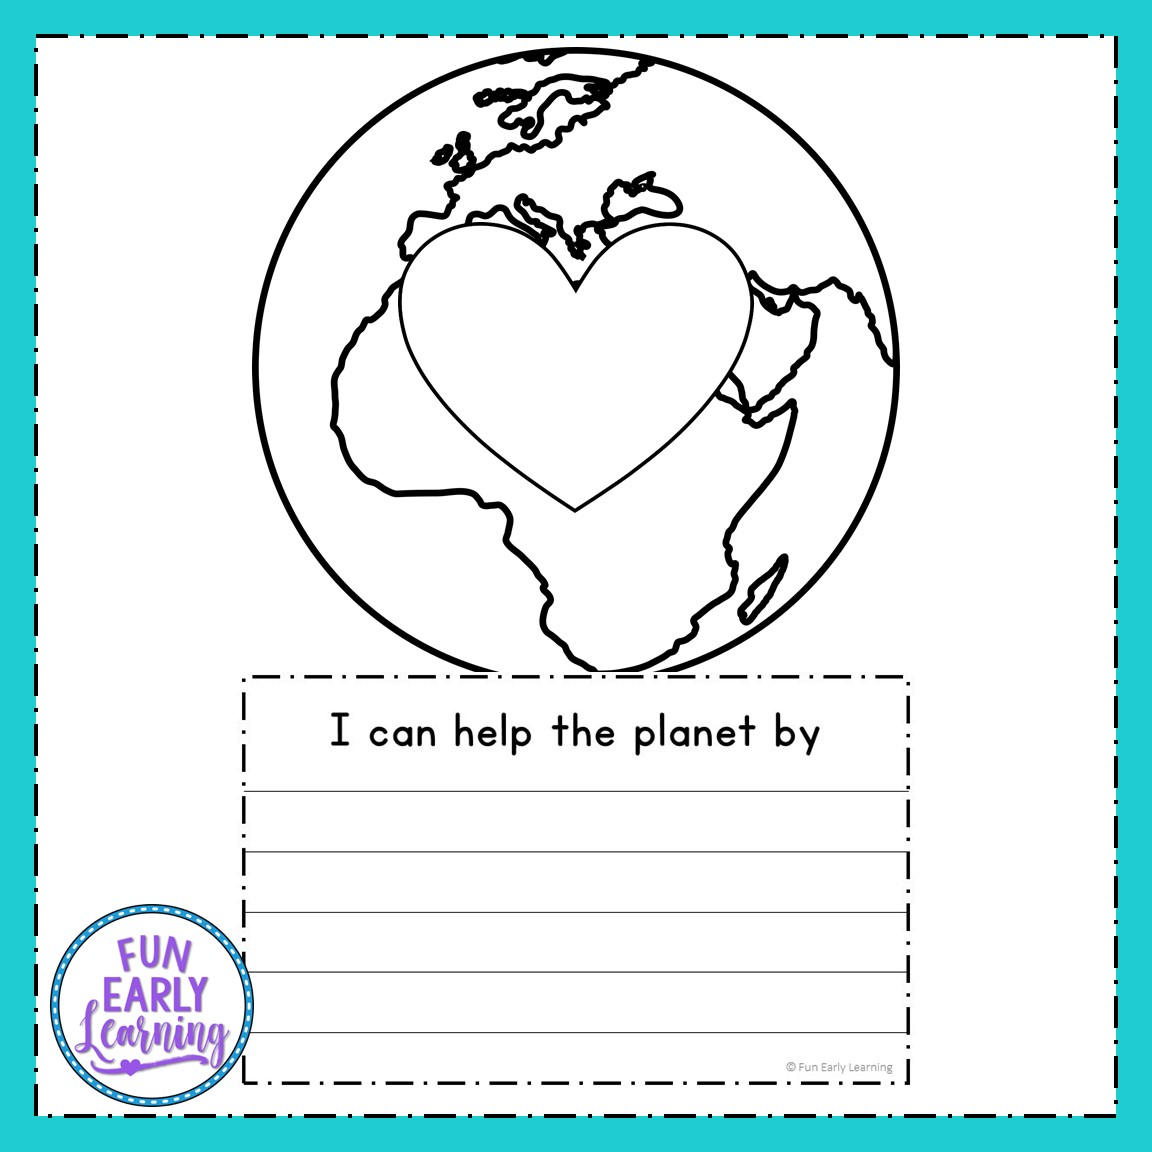 World Earth Day Essay - Your Home Teacher